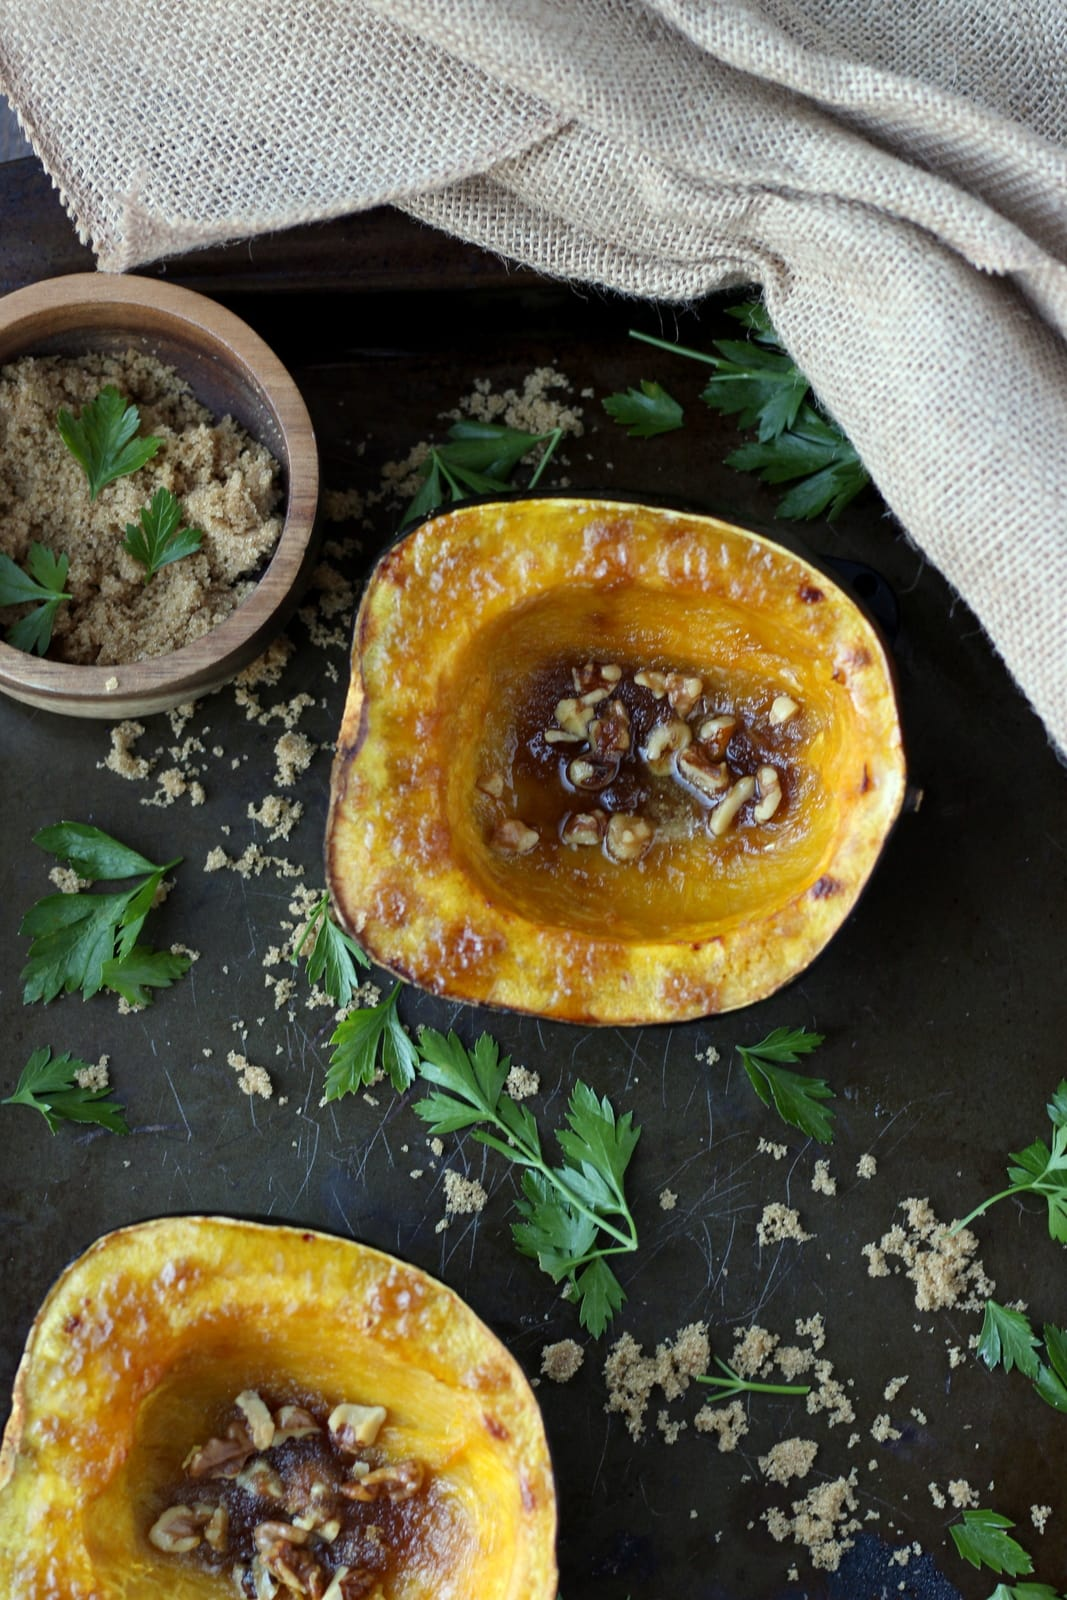 Roasted acorn squash with walnuts, browned butter and brown sugar. How to cook acorn squash. Awesome recipe for fall! thewoodenskillet.com